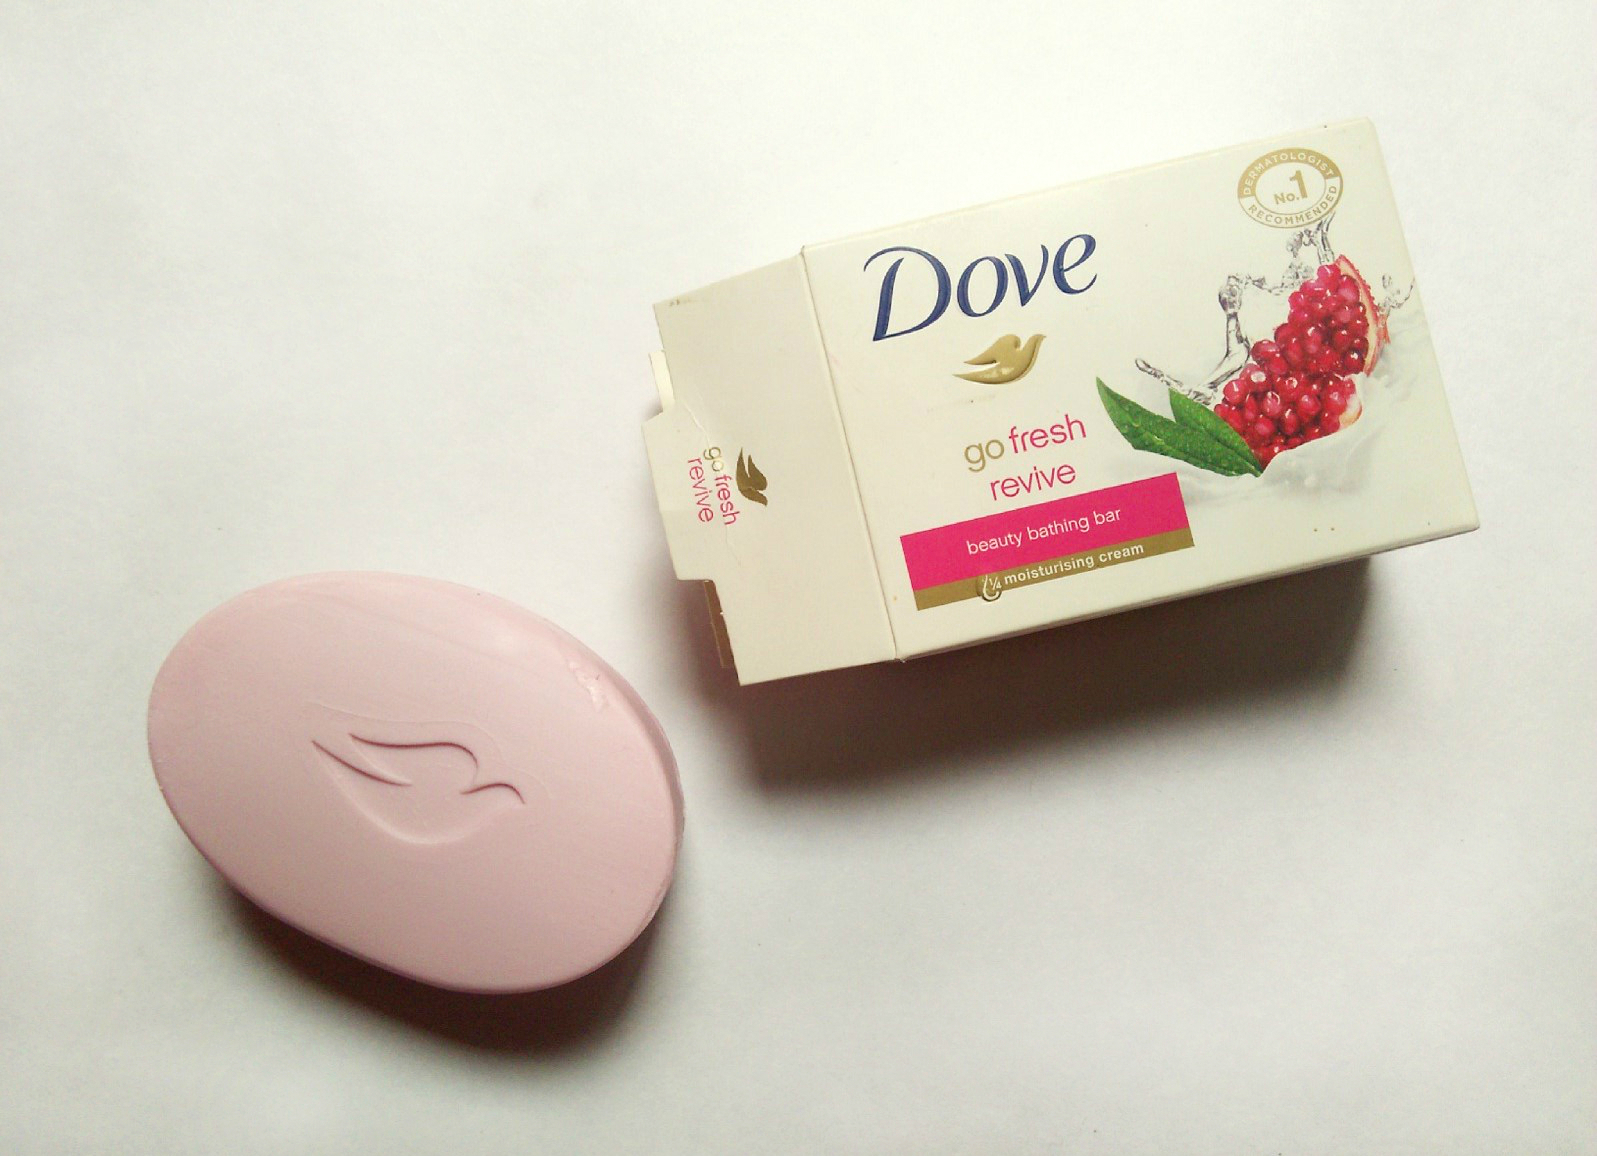 Dove (toiletries)